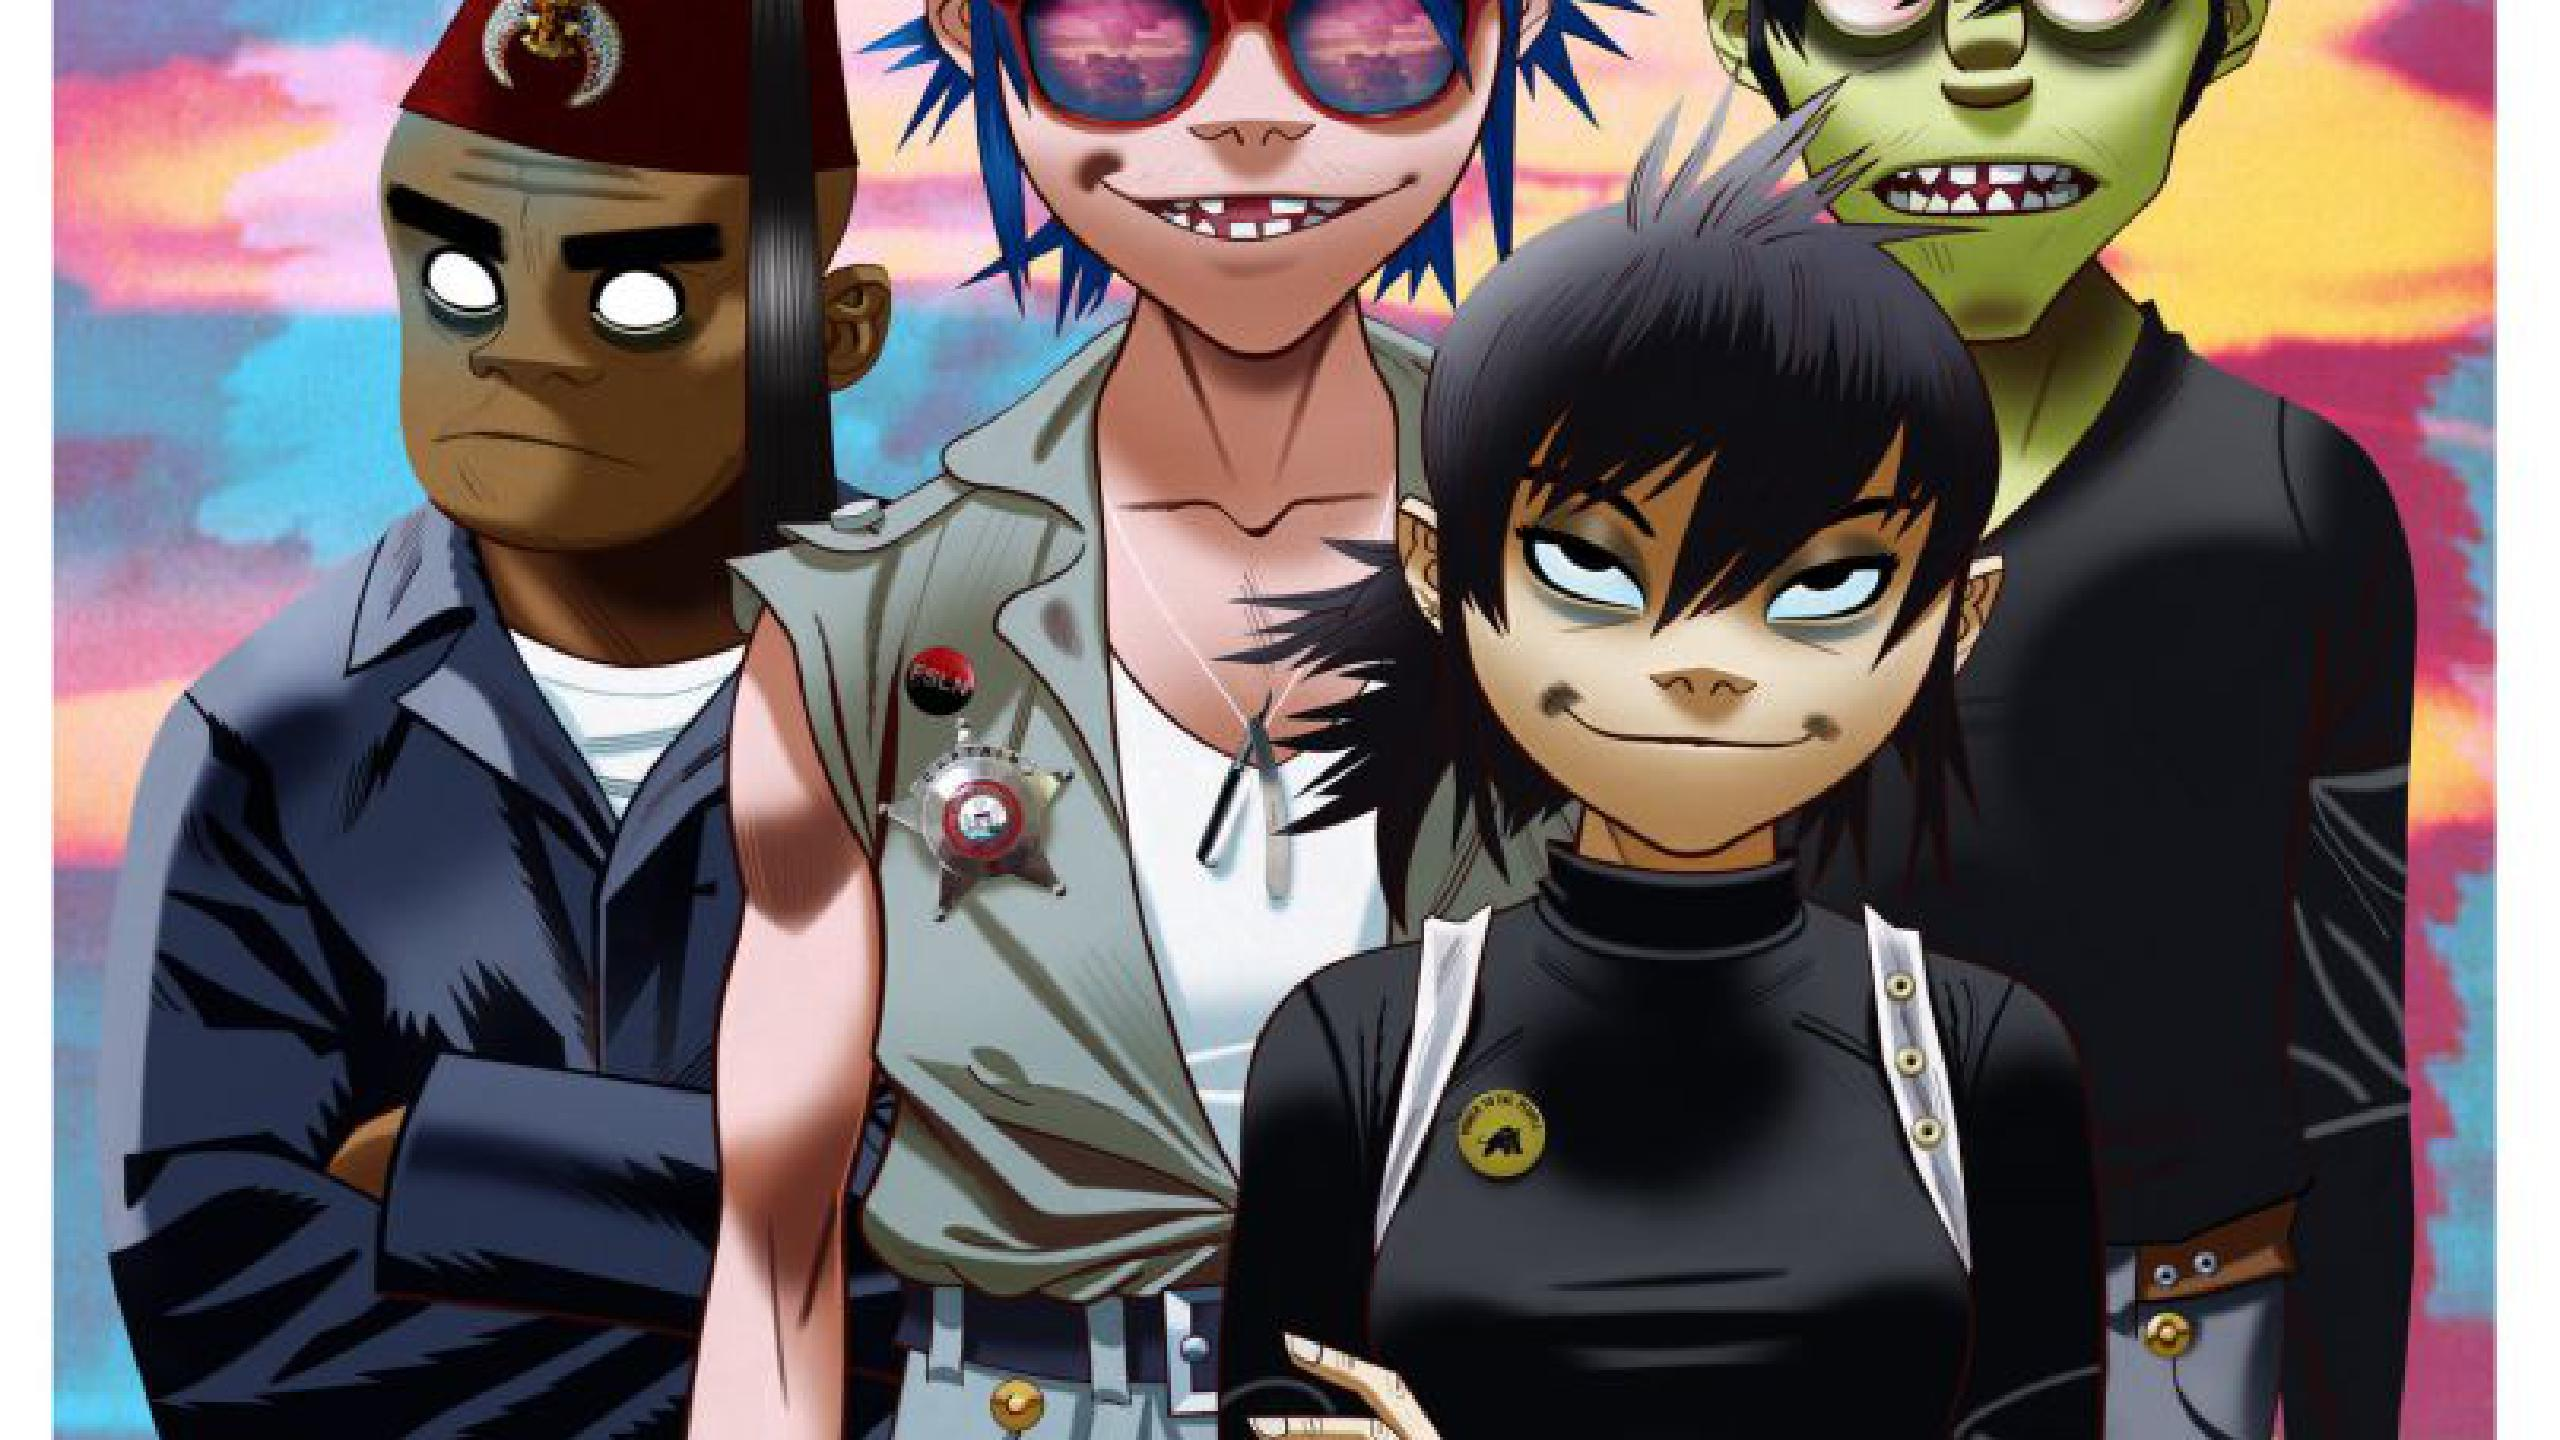 Gorillaz Tour 2020.Gorillaz Tour Dates 2019 2020 Gorillaz Tickets And Concerts